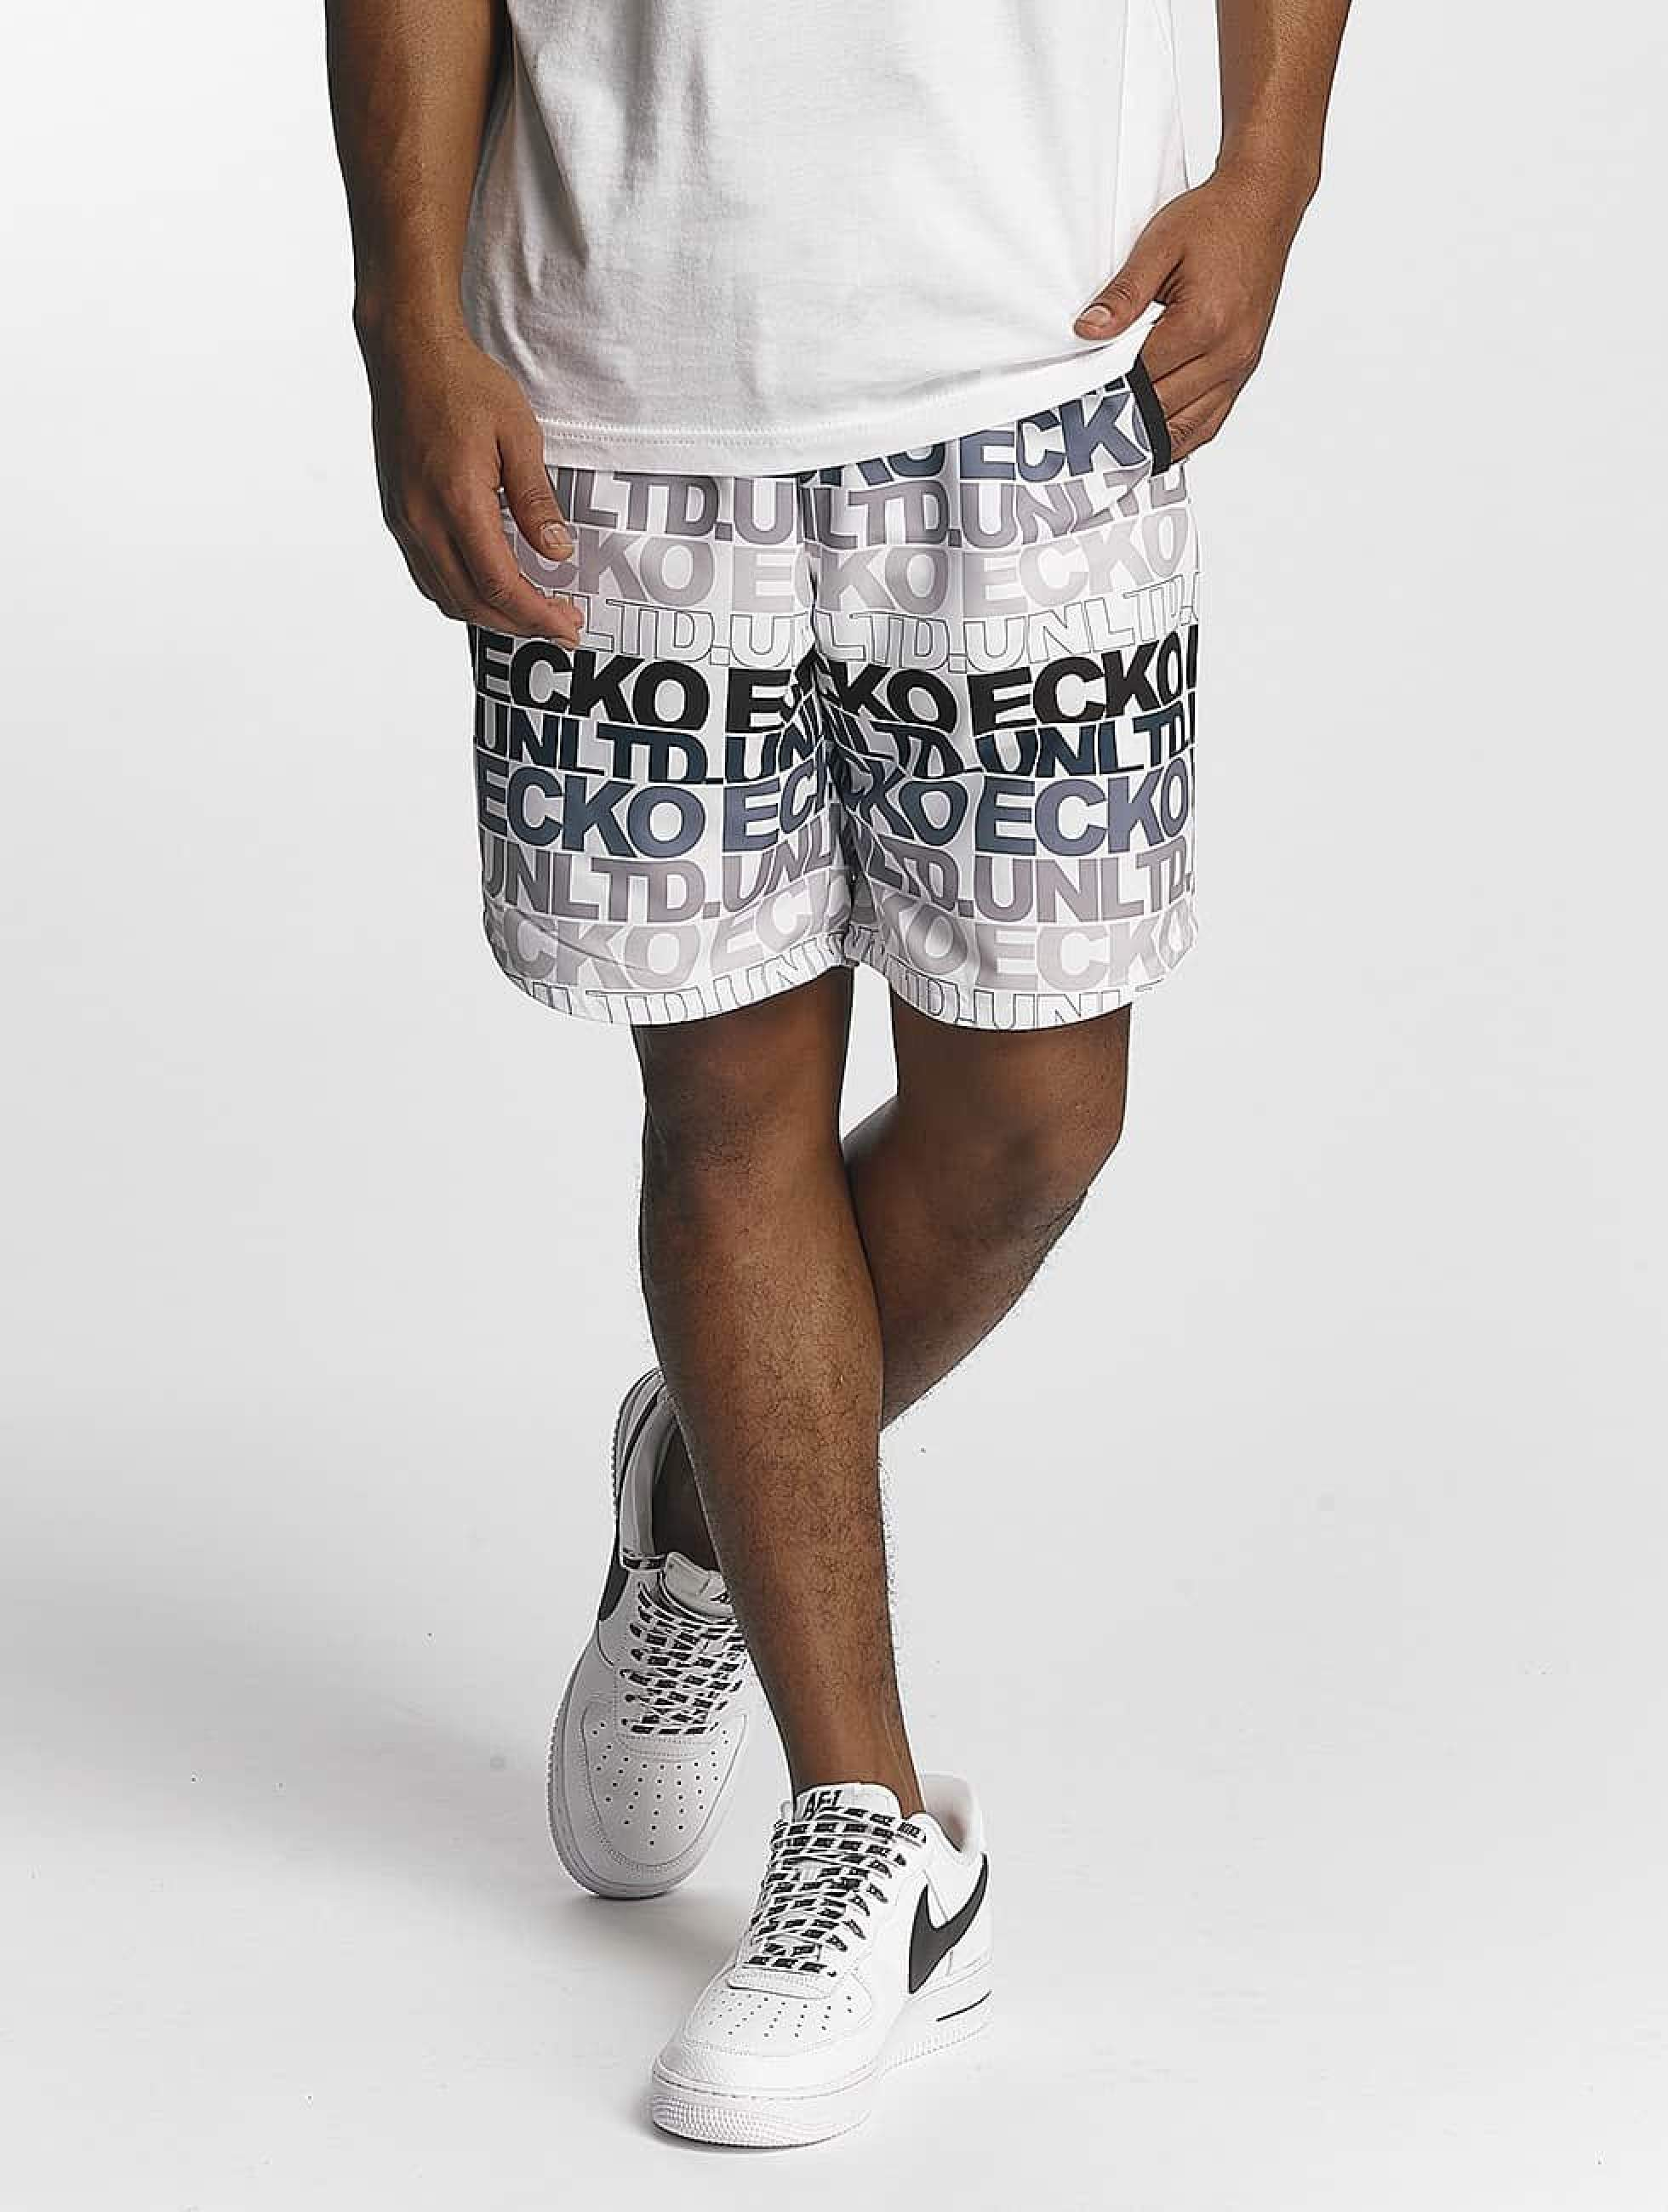 Ecko Unltd. / Short TroudÀrgent in grey L